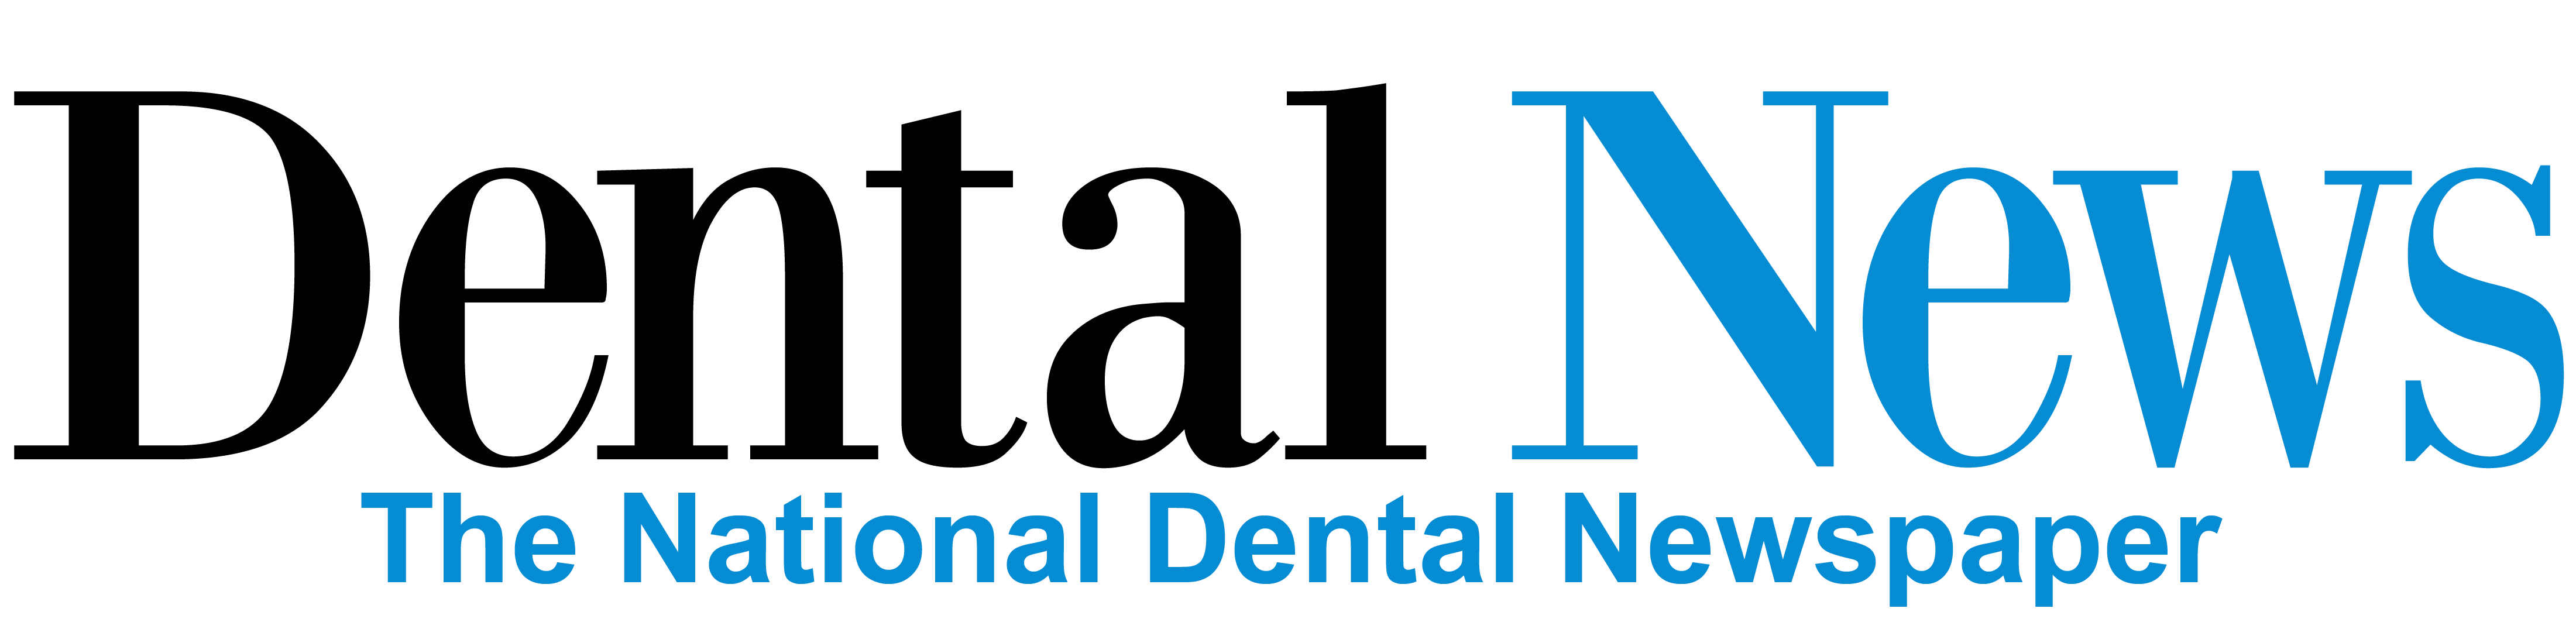 Png newspaper the national. Dental news pakistan s